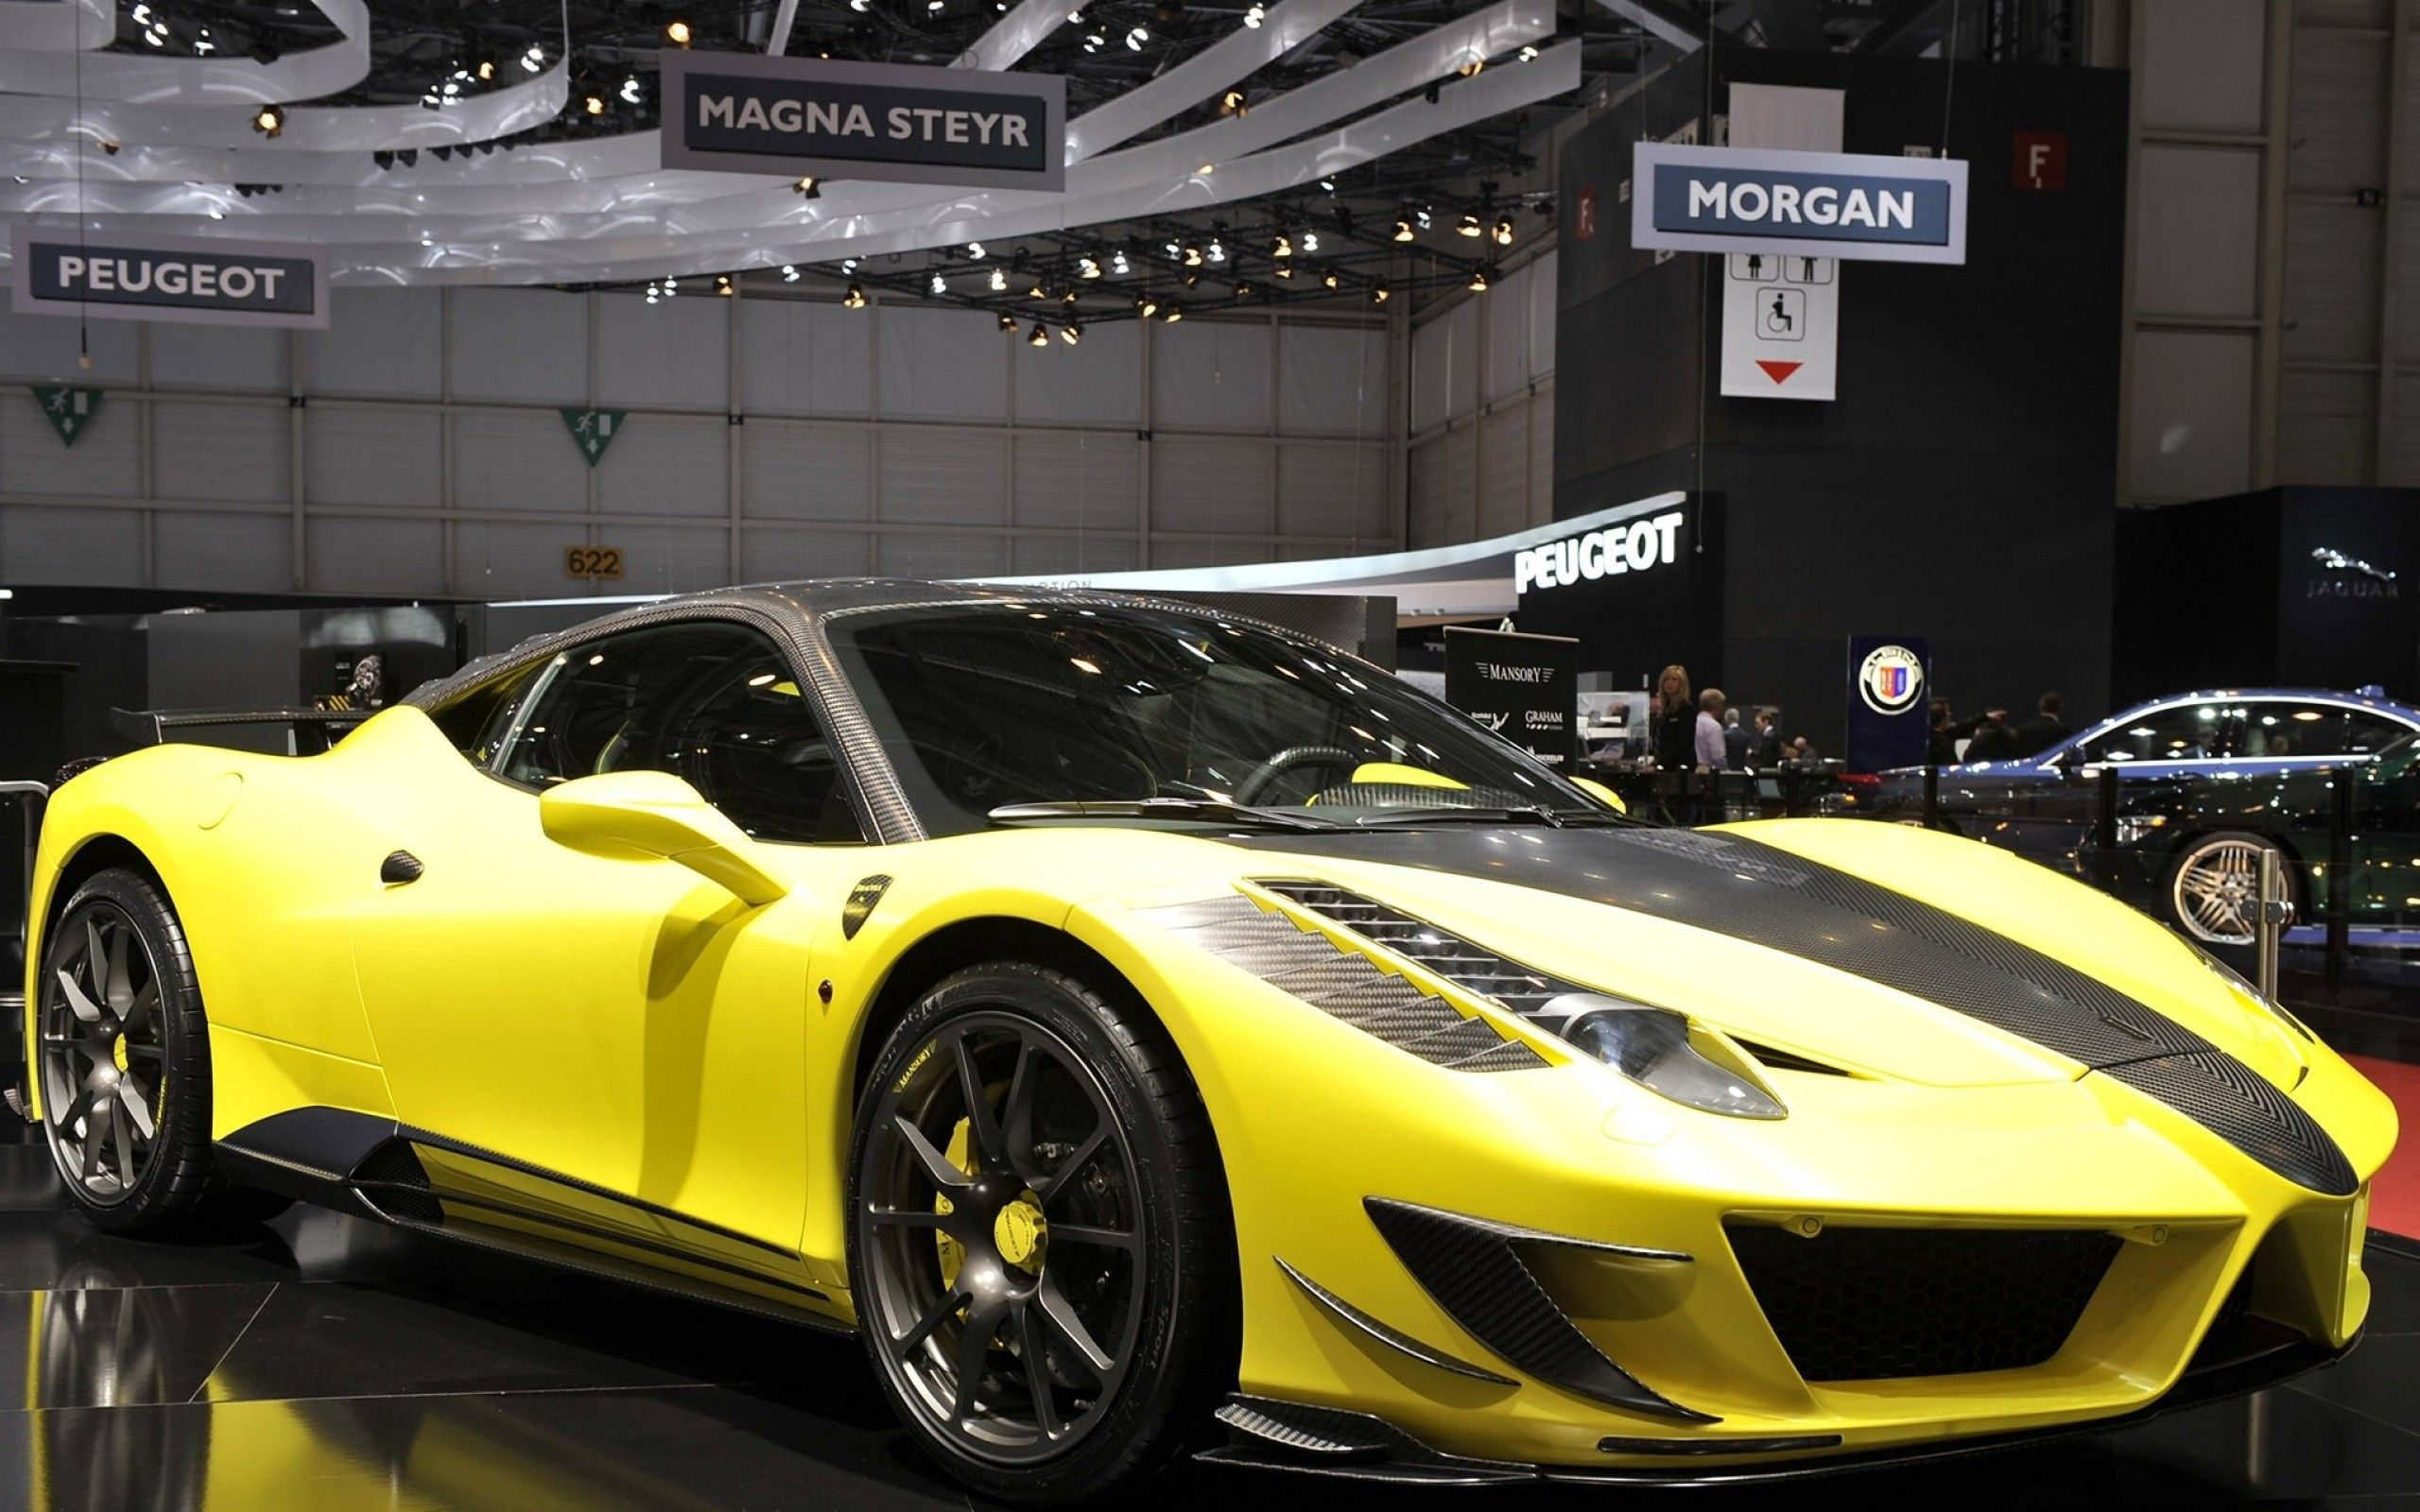 133241 download wallpaper Cars, Ferrari, Auto, Salon screensavers and pictures for free